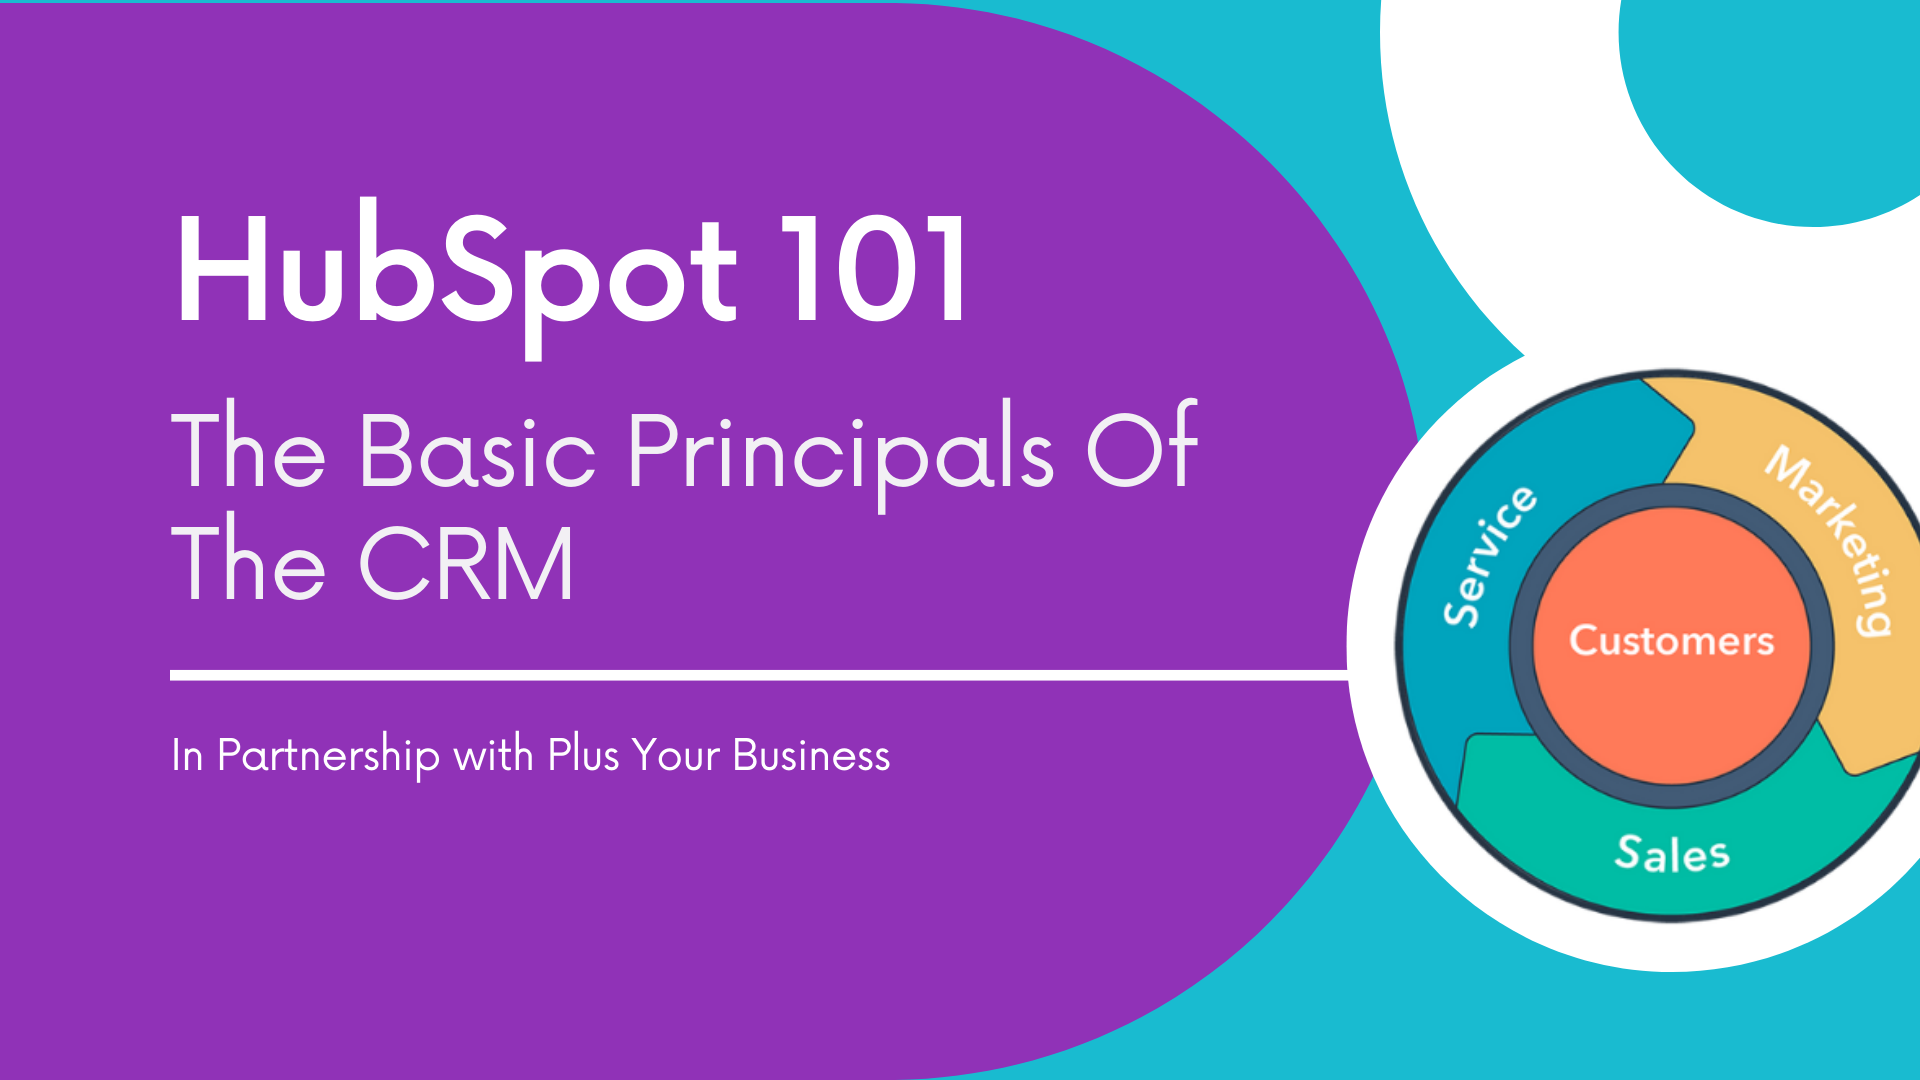 HubSpot 101: The Basic Principals of the CRM